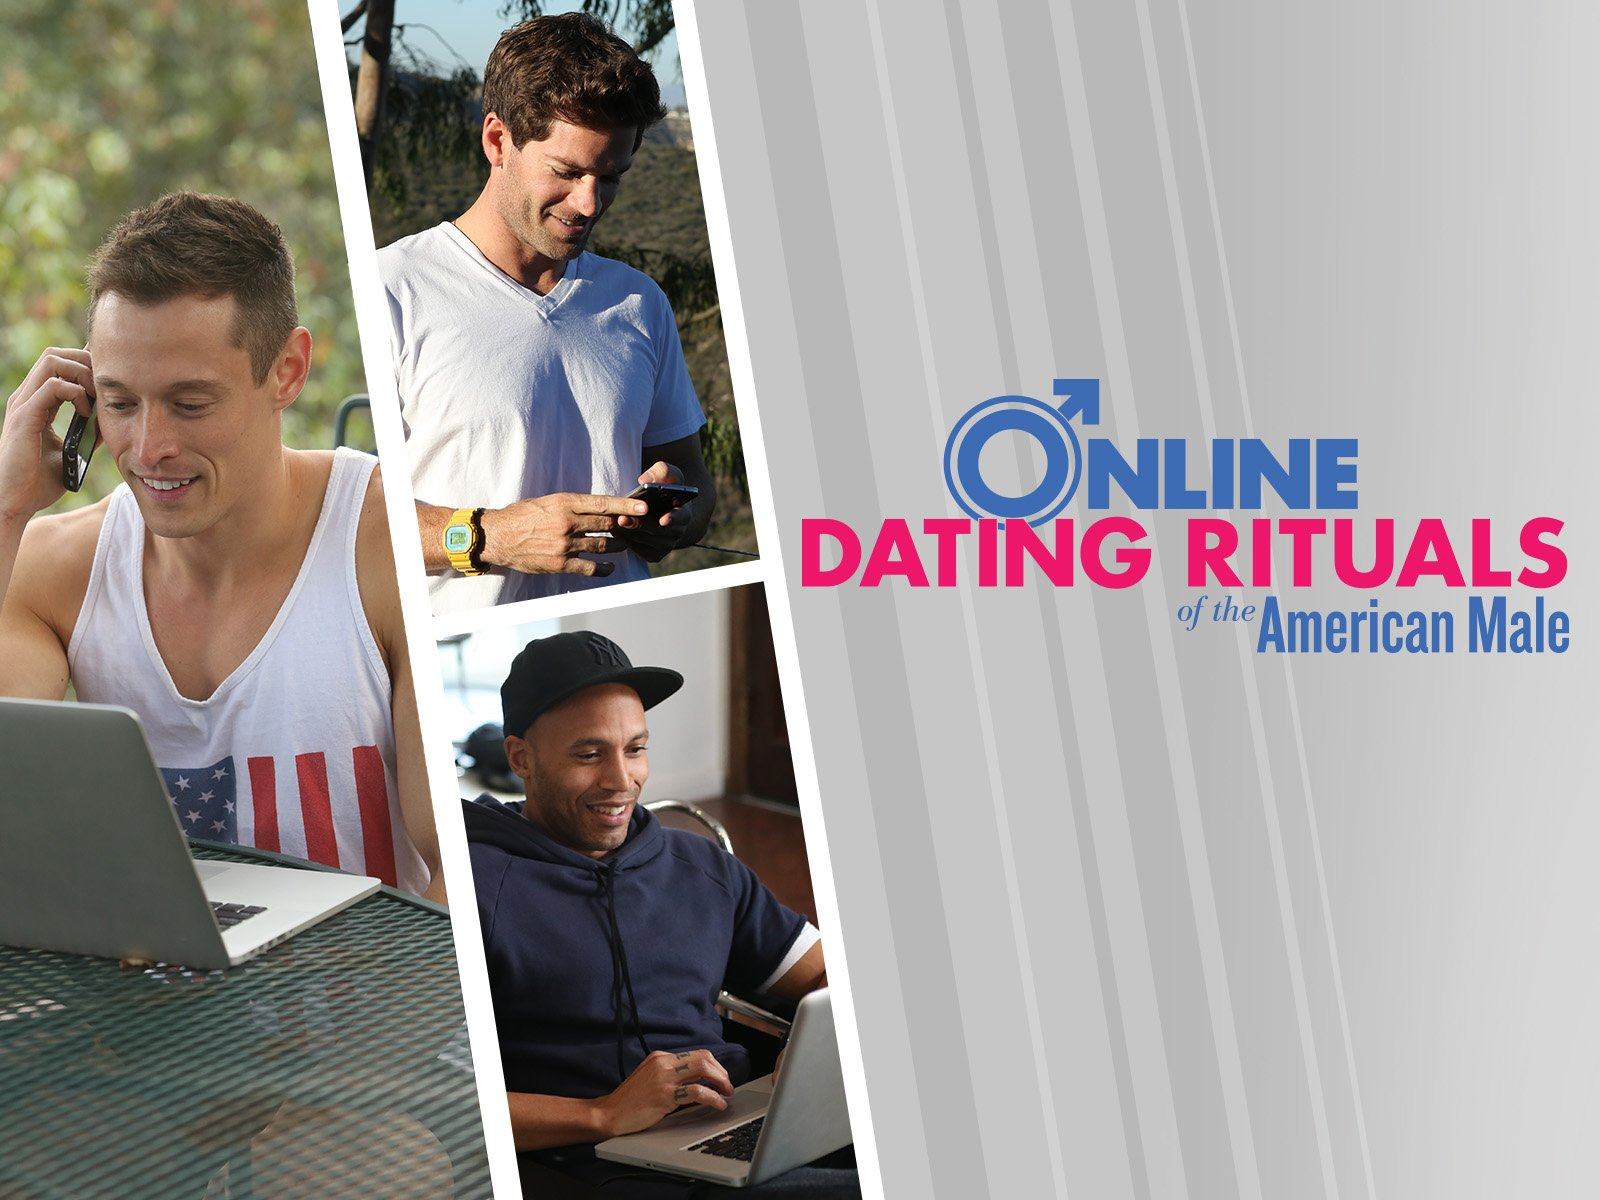 Online hookup rituals of the american male